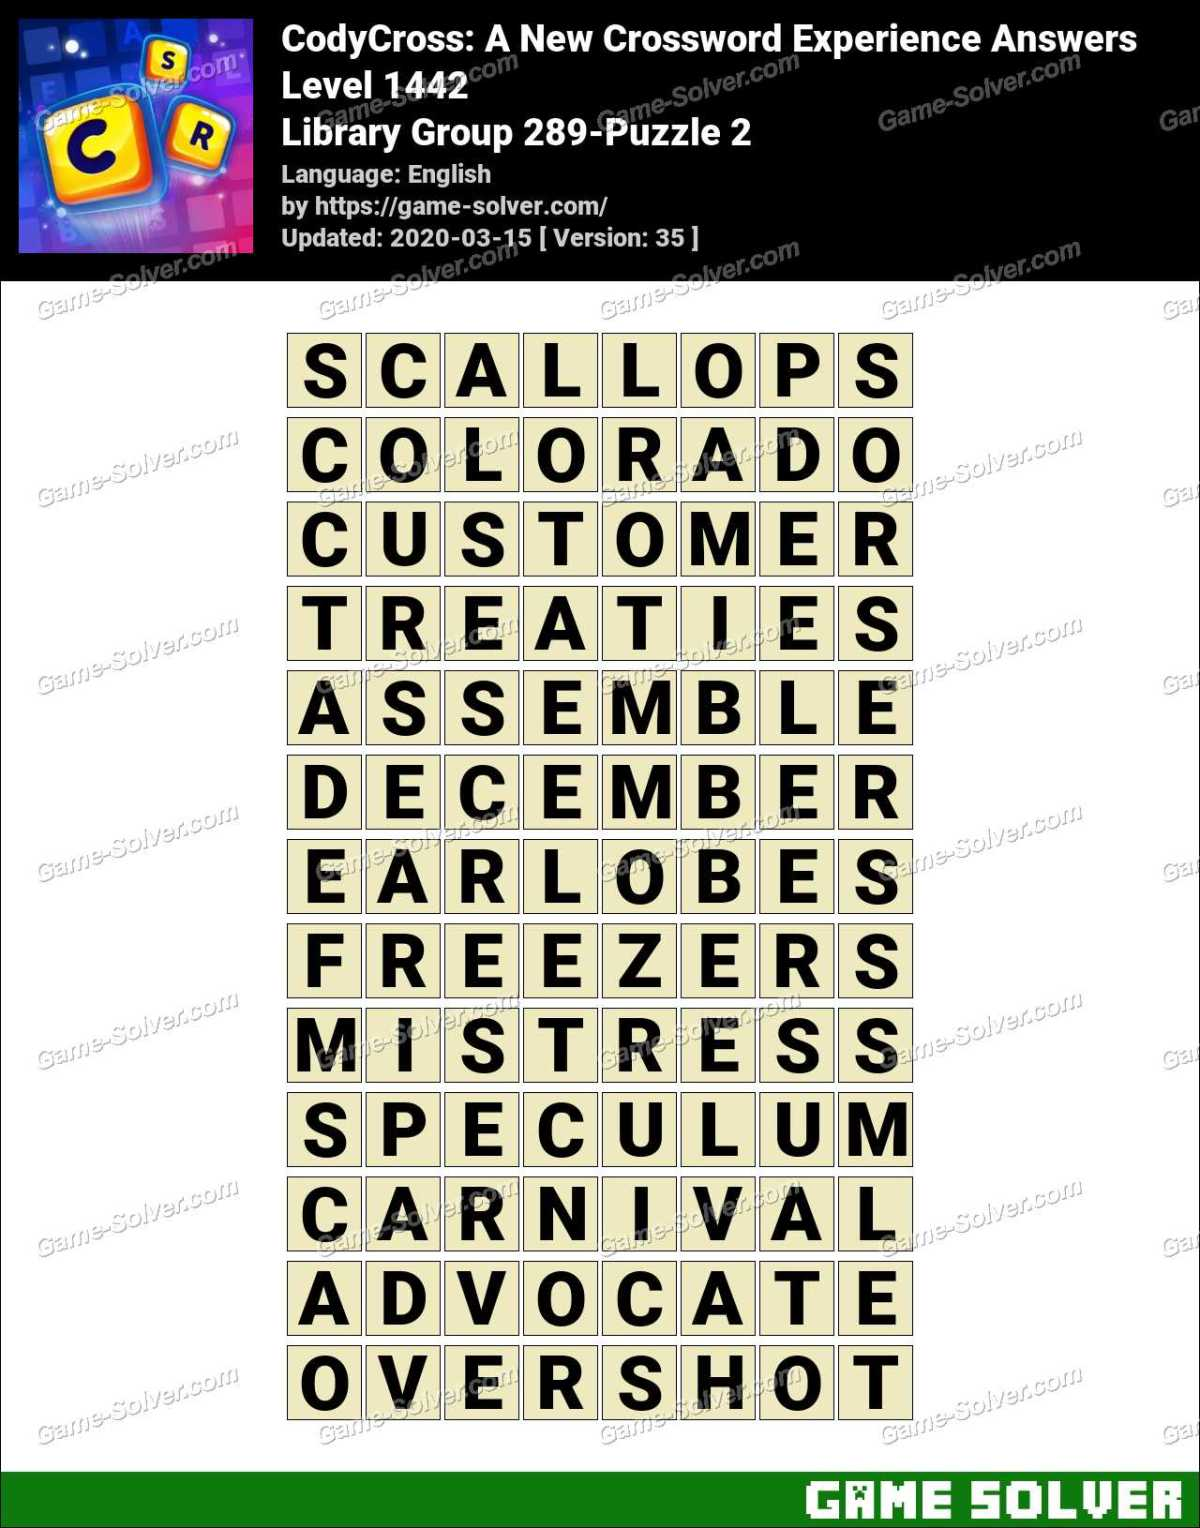 CodyCross Library Group 289-Puzzle 2 Answers